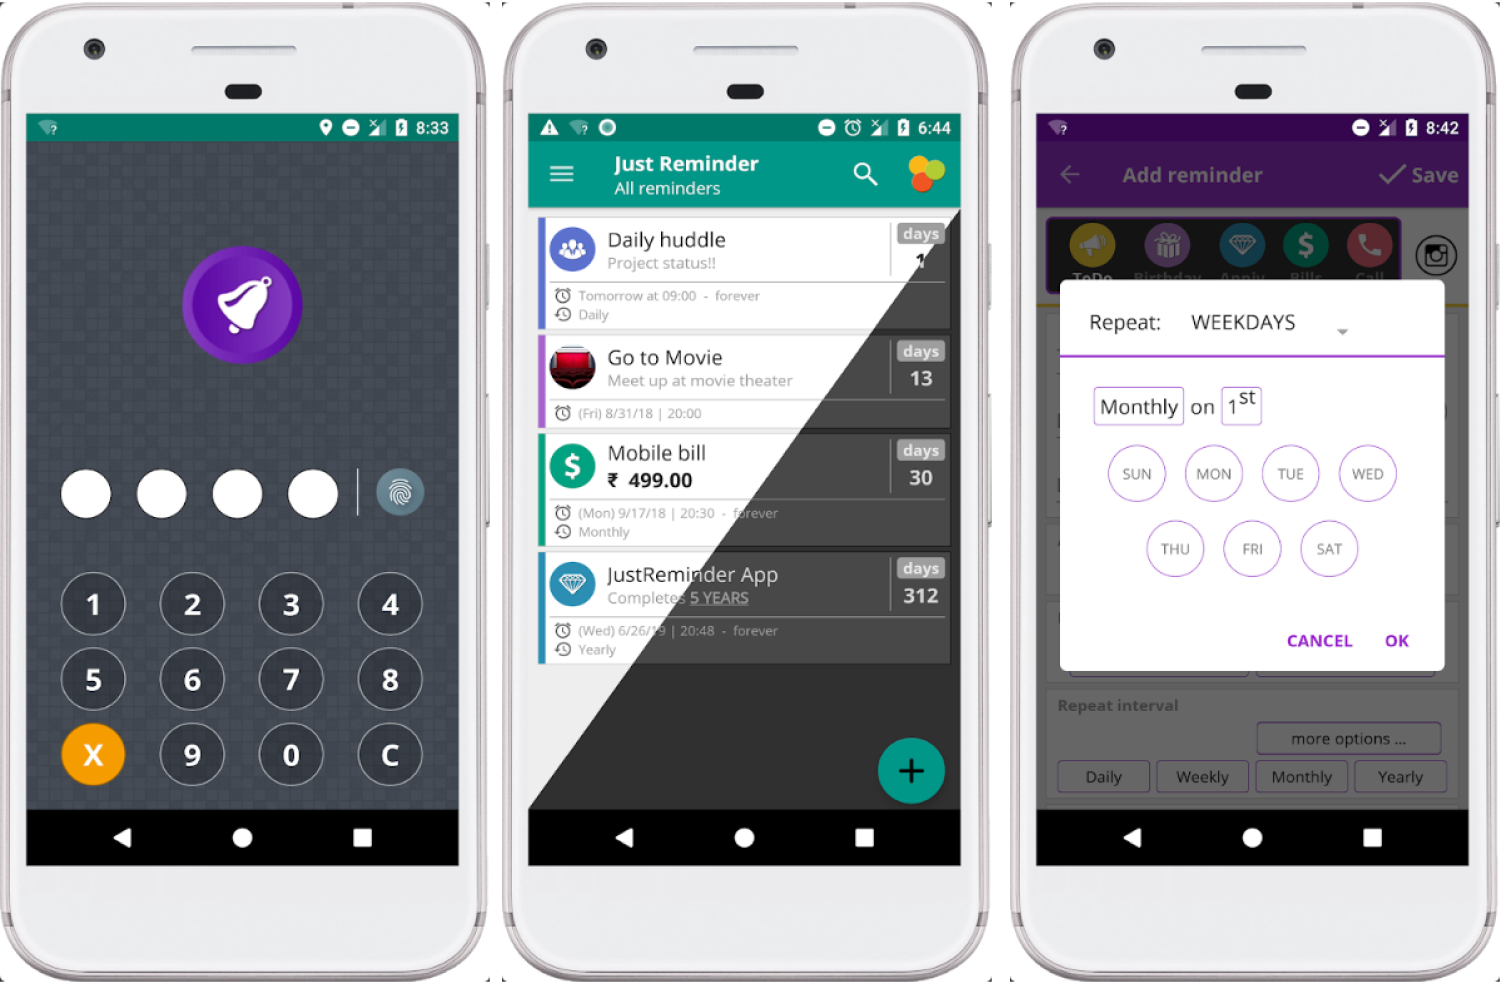 Best Reminder Apps For Android Android apps, App, Reminder